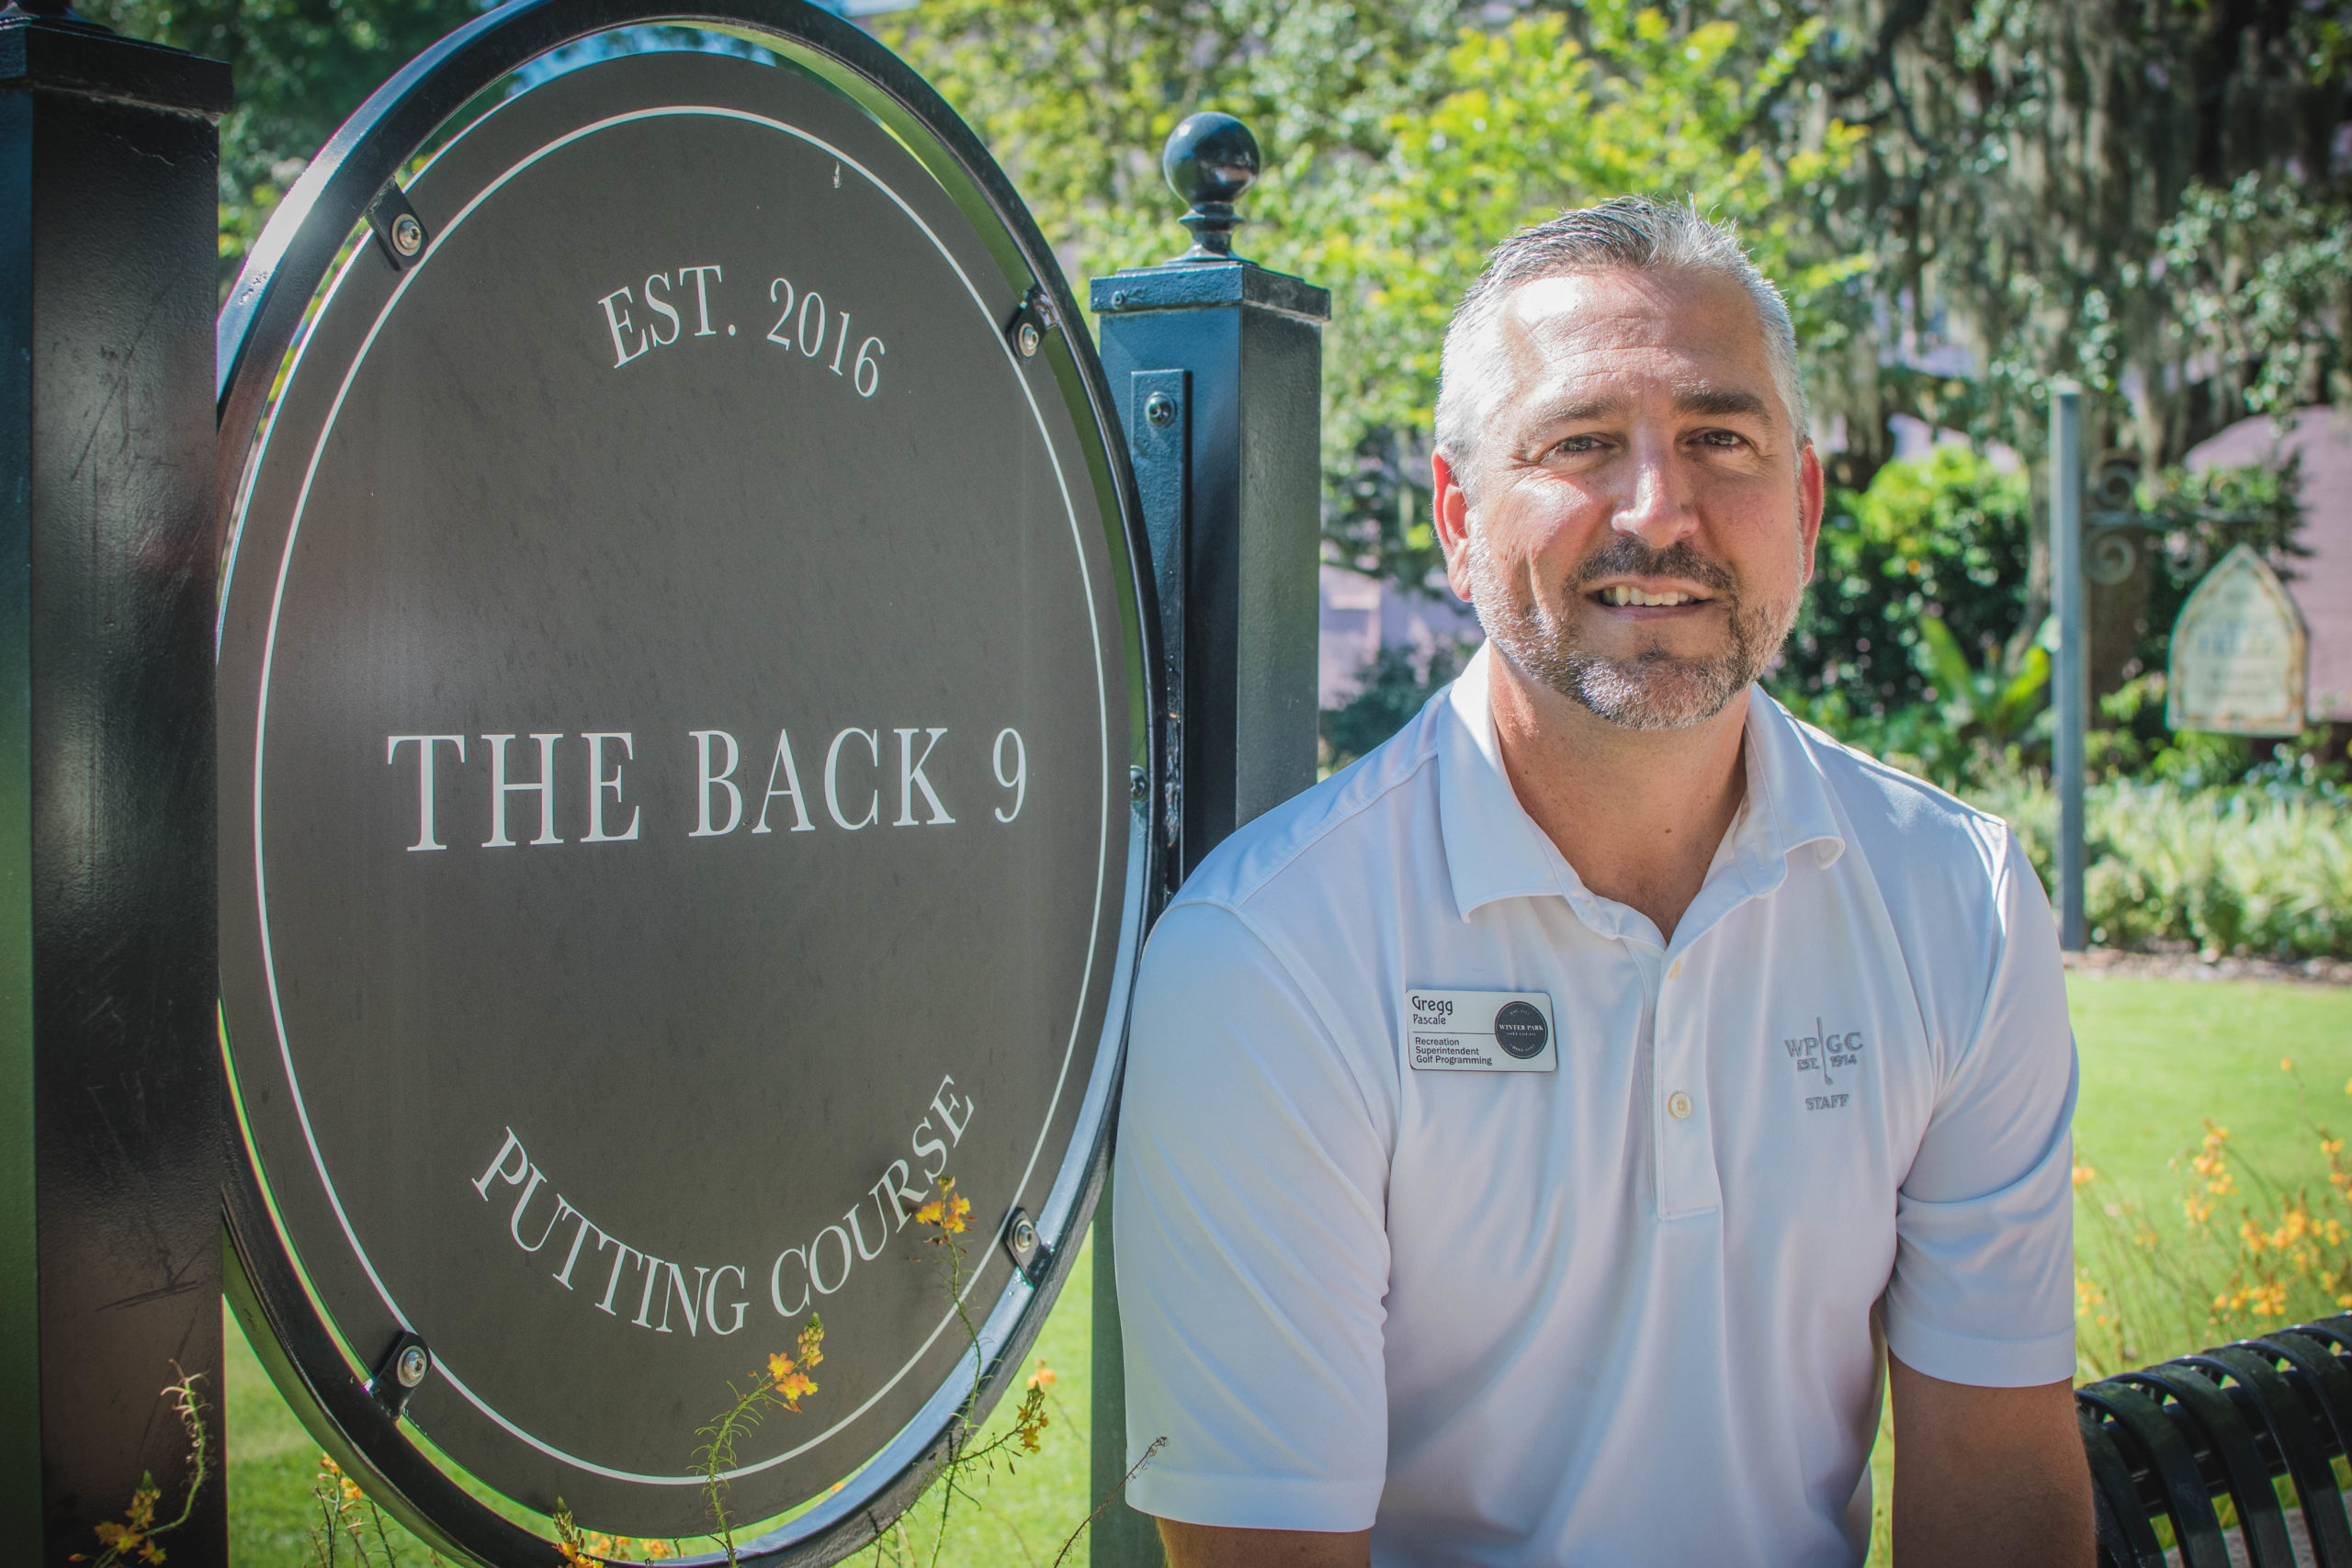 Gregg Pascale pictured at The Back 9 of the Winter Park Golf Course.